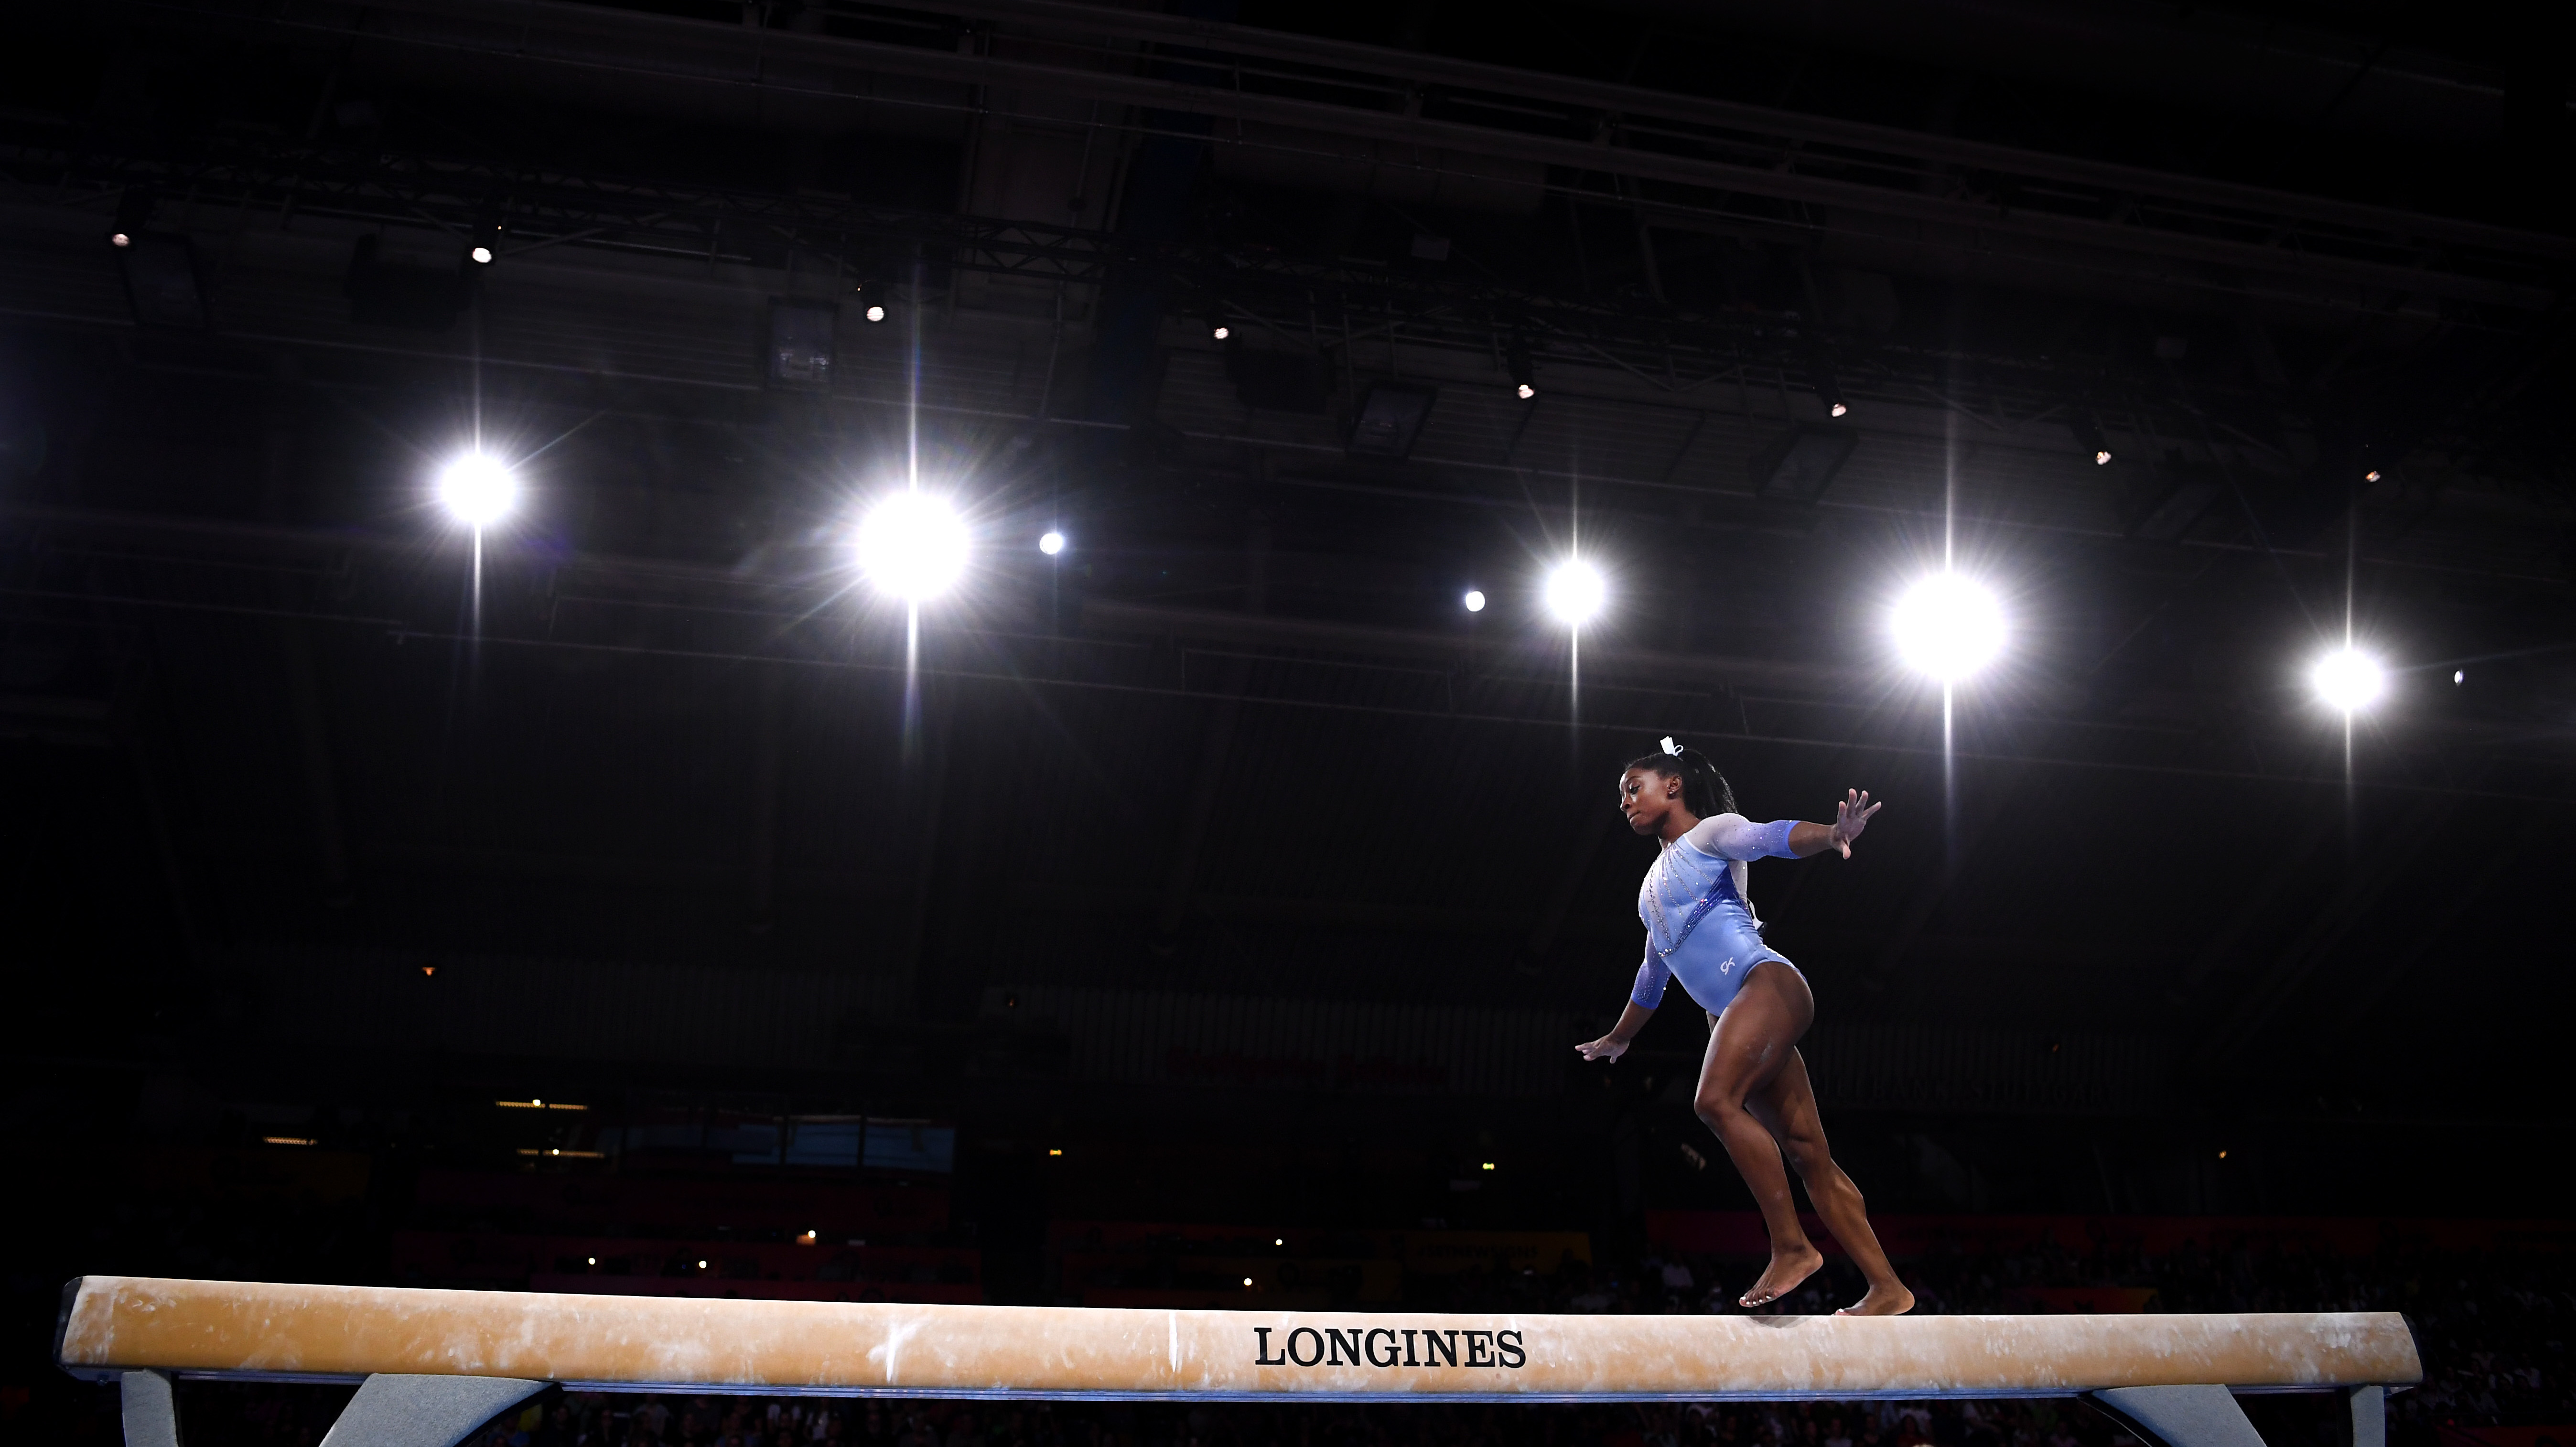 Simone Biles Has 2 More Signature Moves Under Her Name After World Championships